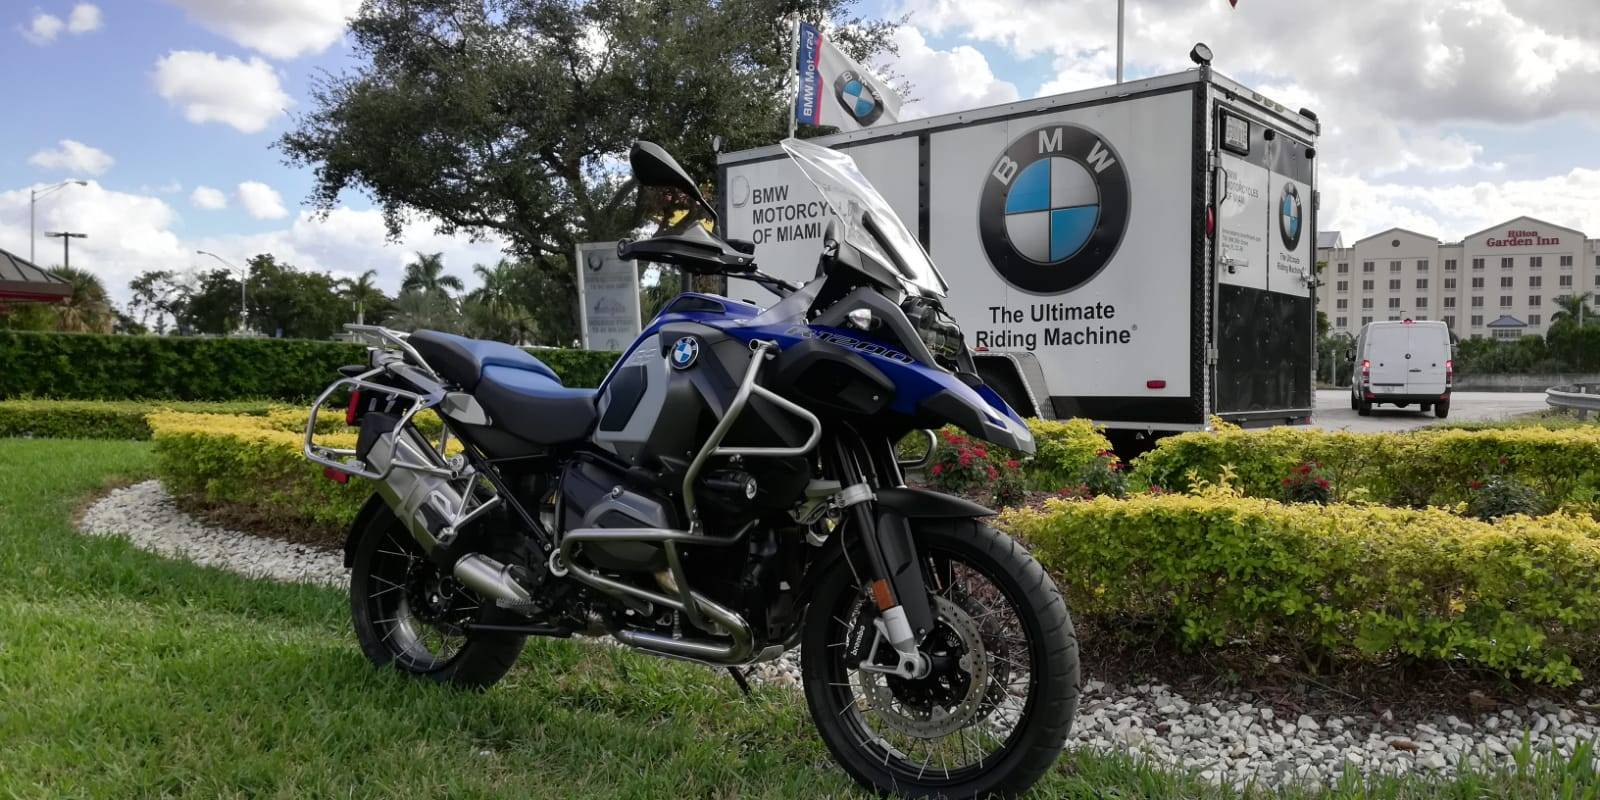 Used 2015 BMW R 1200 GSA for sale, BMW R 1200GSA for sale, BMW Motorcycle R1200GSA, used BMW Adventure, Dual, GS, BMW. BMW Motorcycles of Miami, Motorcycles of Miami, Motorcycles Miami, New Motorcycles, Used Motorcycles, pre-owned. #BMWMotorcyclesOfMiami #MotorcyclesOfMiami. - Photo 7